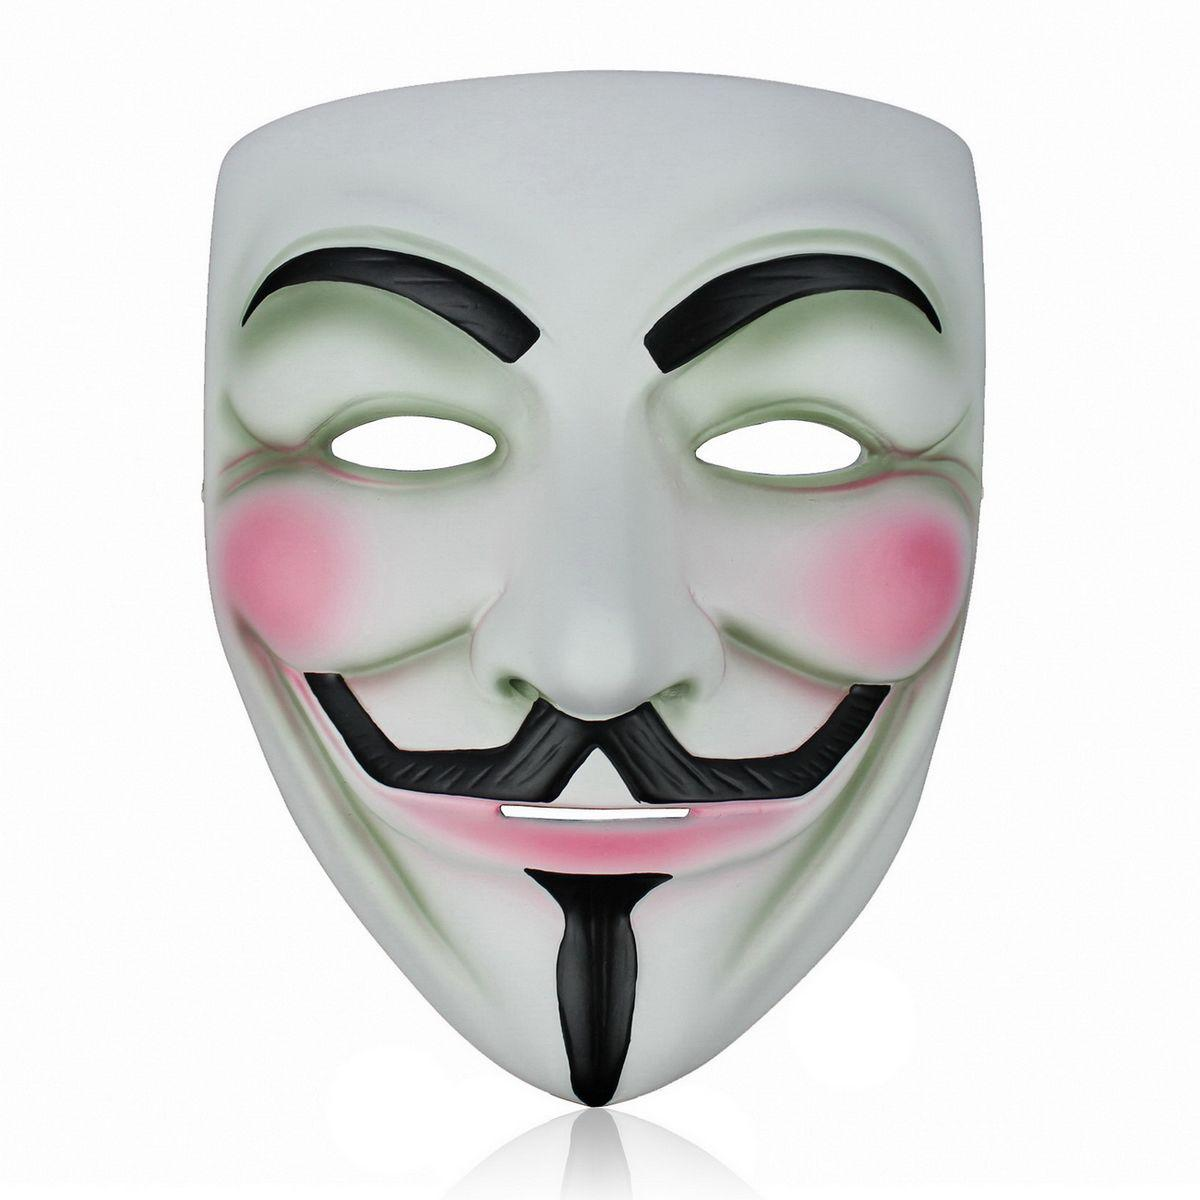 Brand New 5pcs Resin V for Vendetta Mask Halloween Masks cosplay party dance dress gift Props Decoration